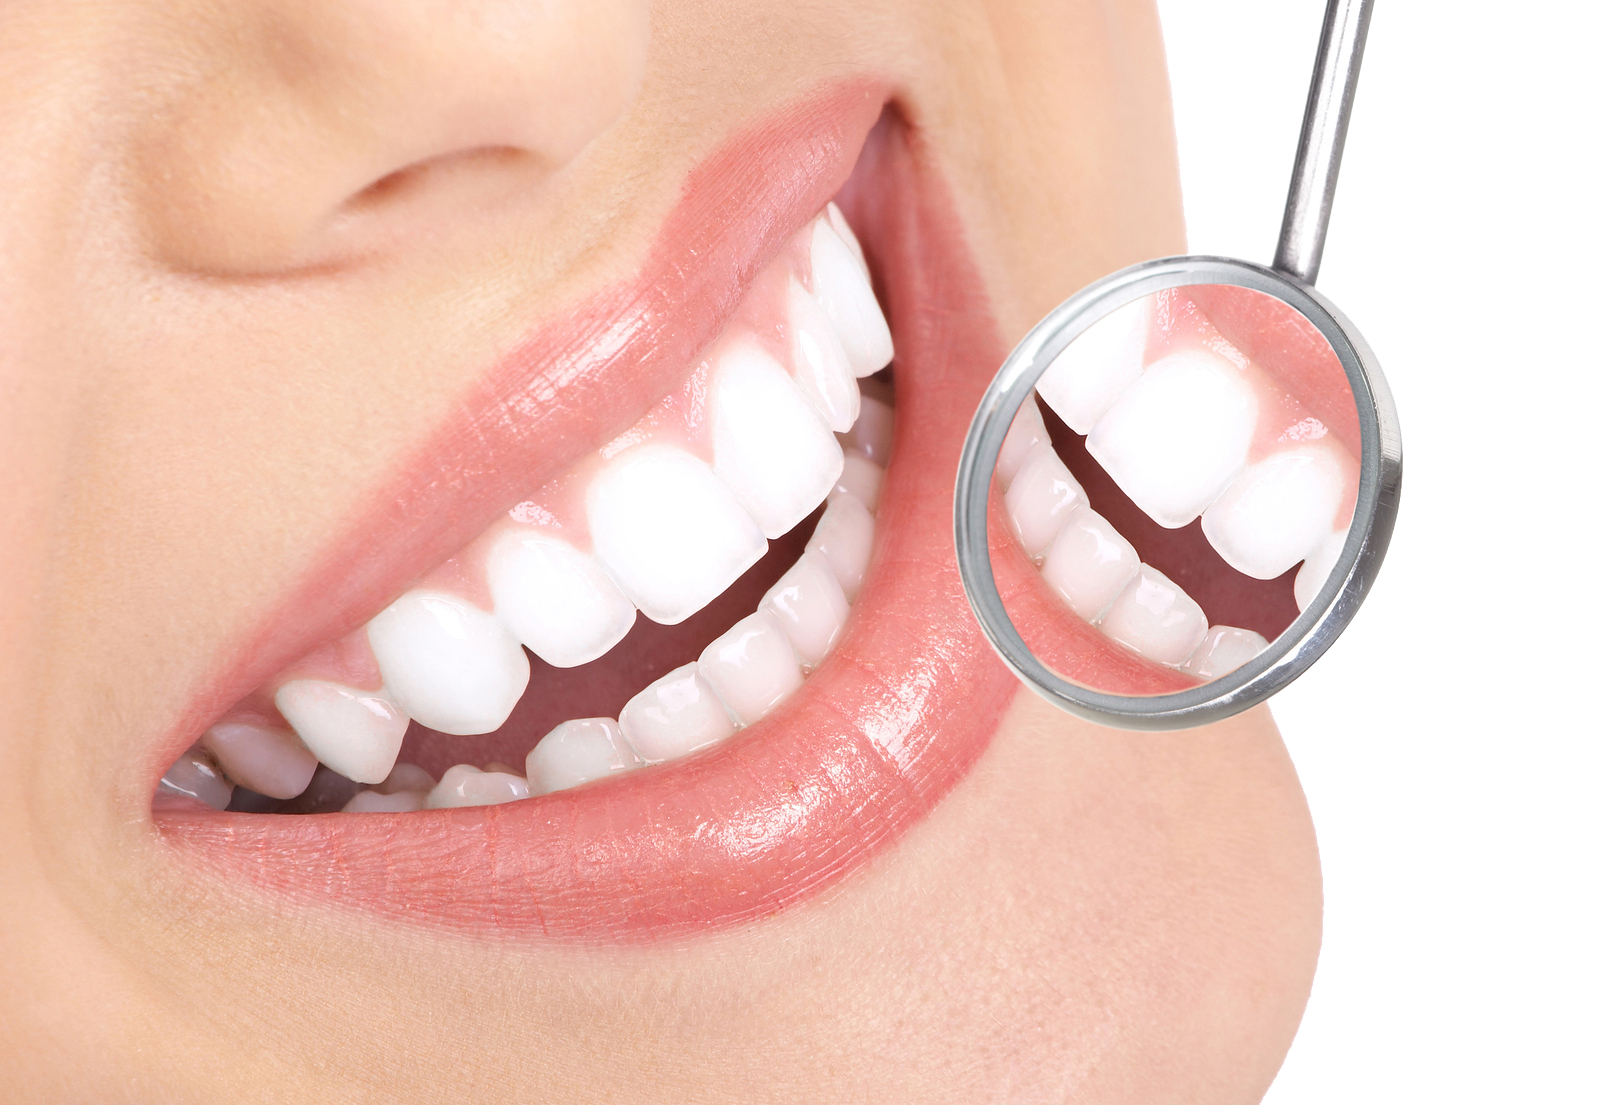 Smile Dental Wallpapers Top Free Smile Dental Backgrounds Wallpaperaccess